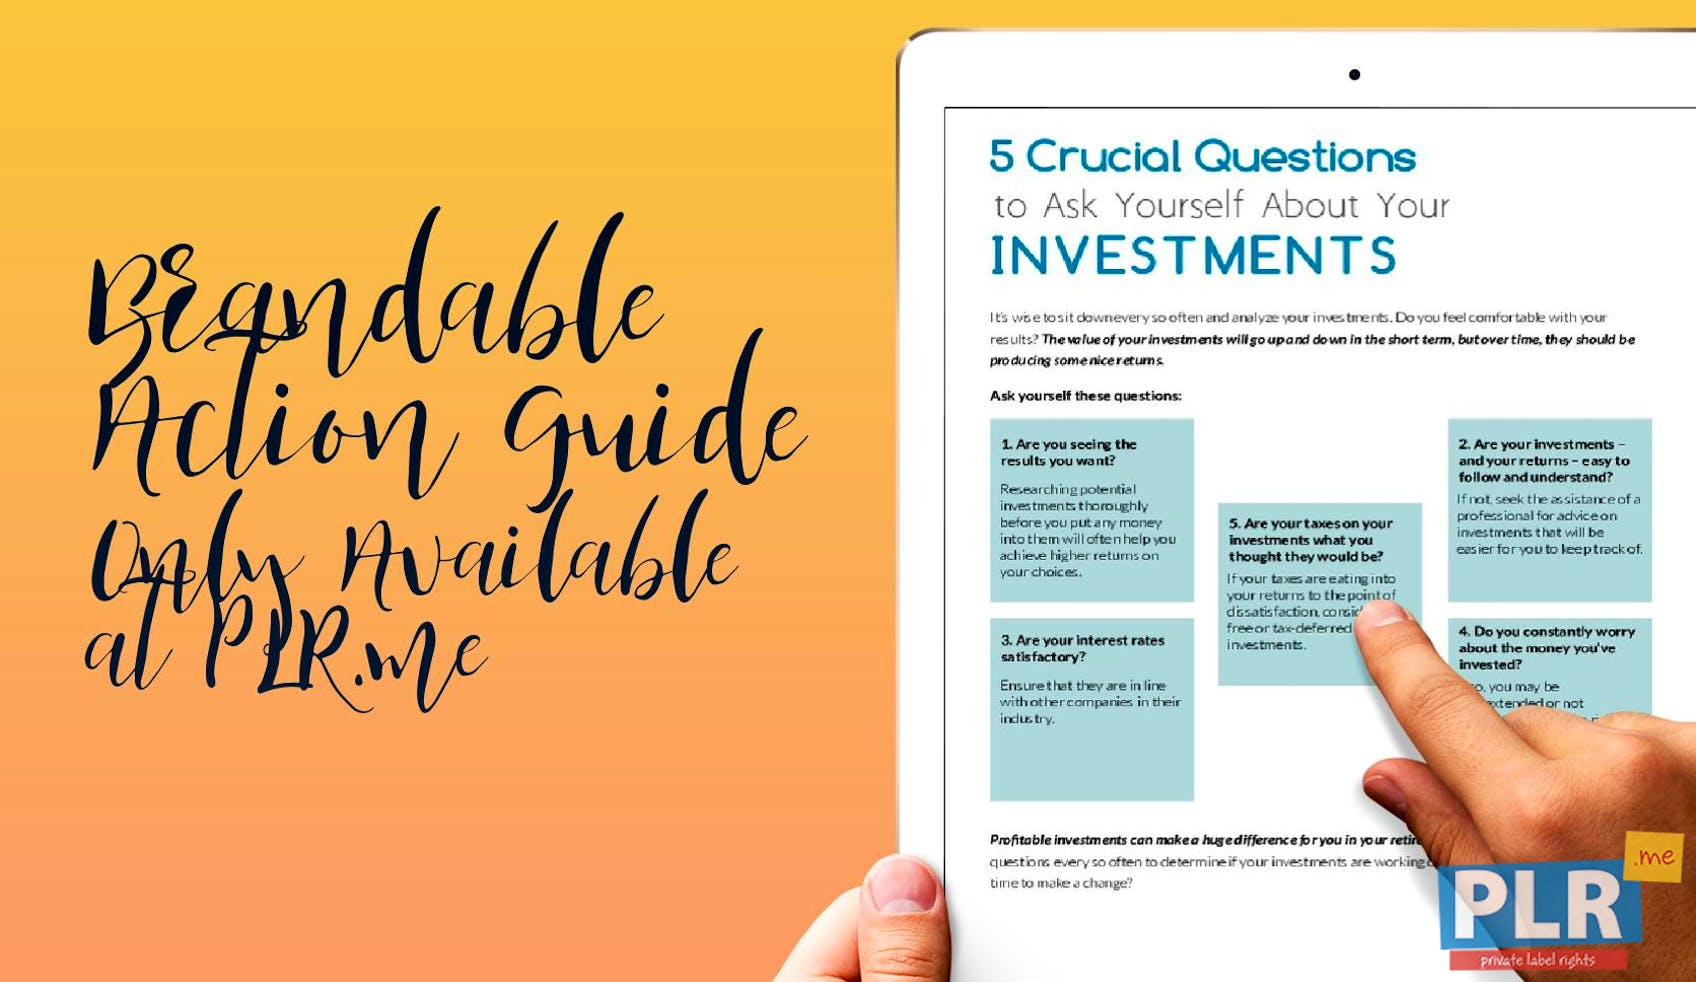 5 Crucial Questions To Ask Yourself About Your Investments